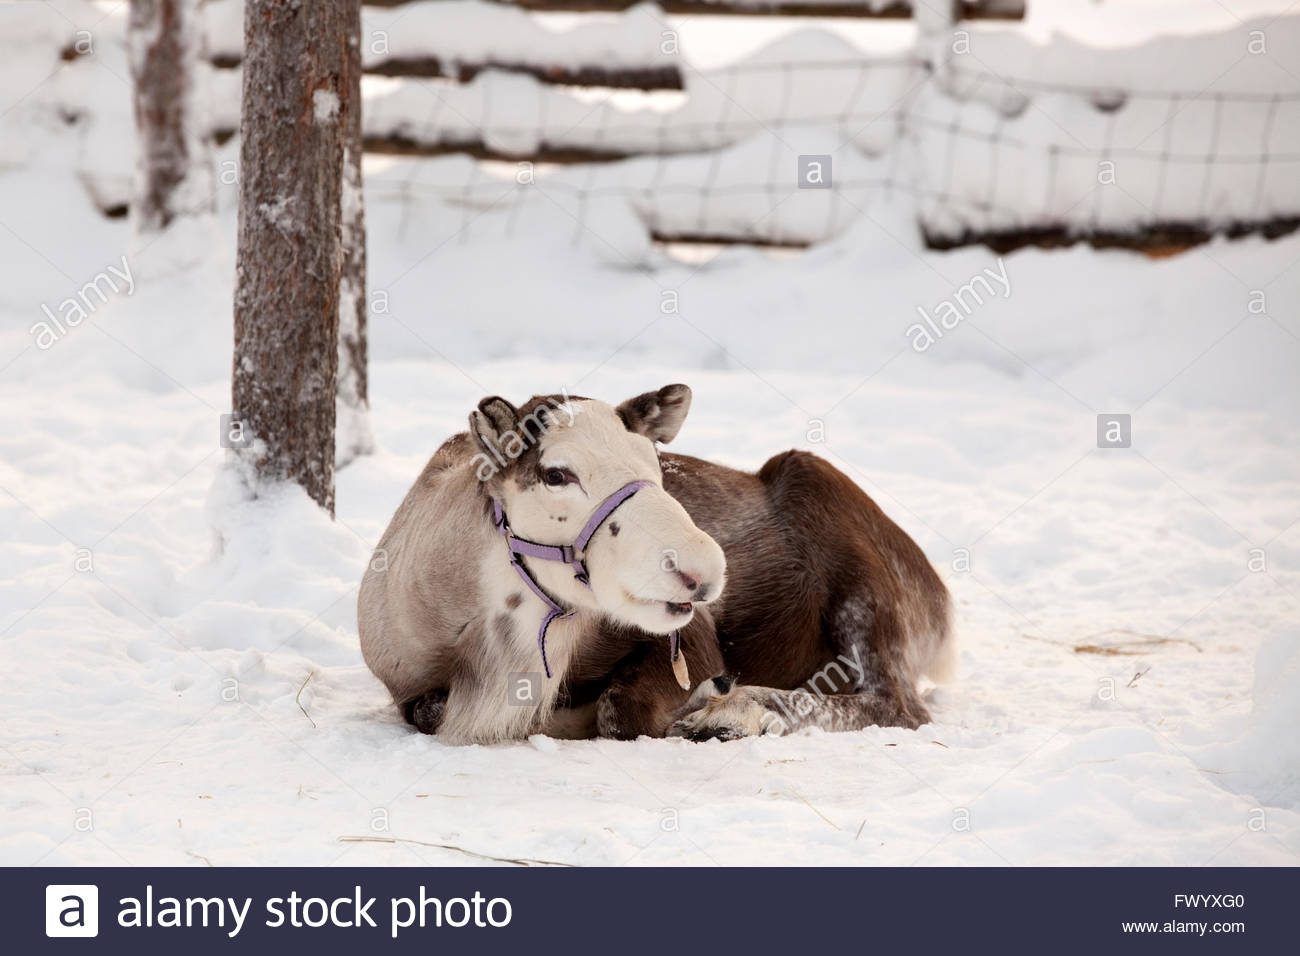 Farm animals out in winter at Finnish Lapland - Stock Image